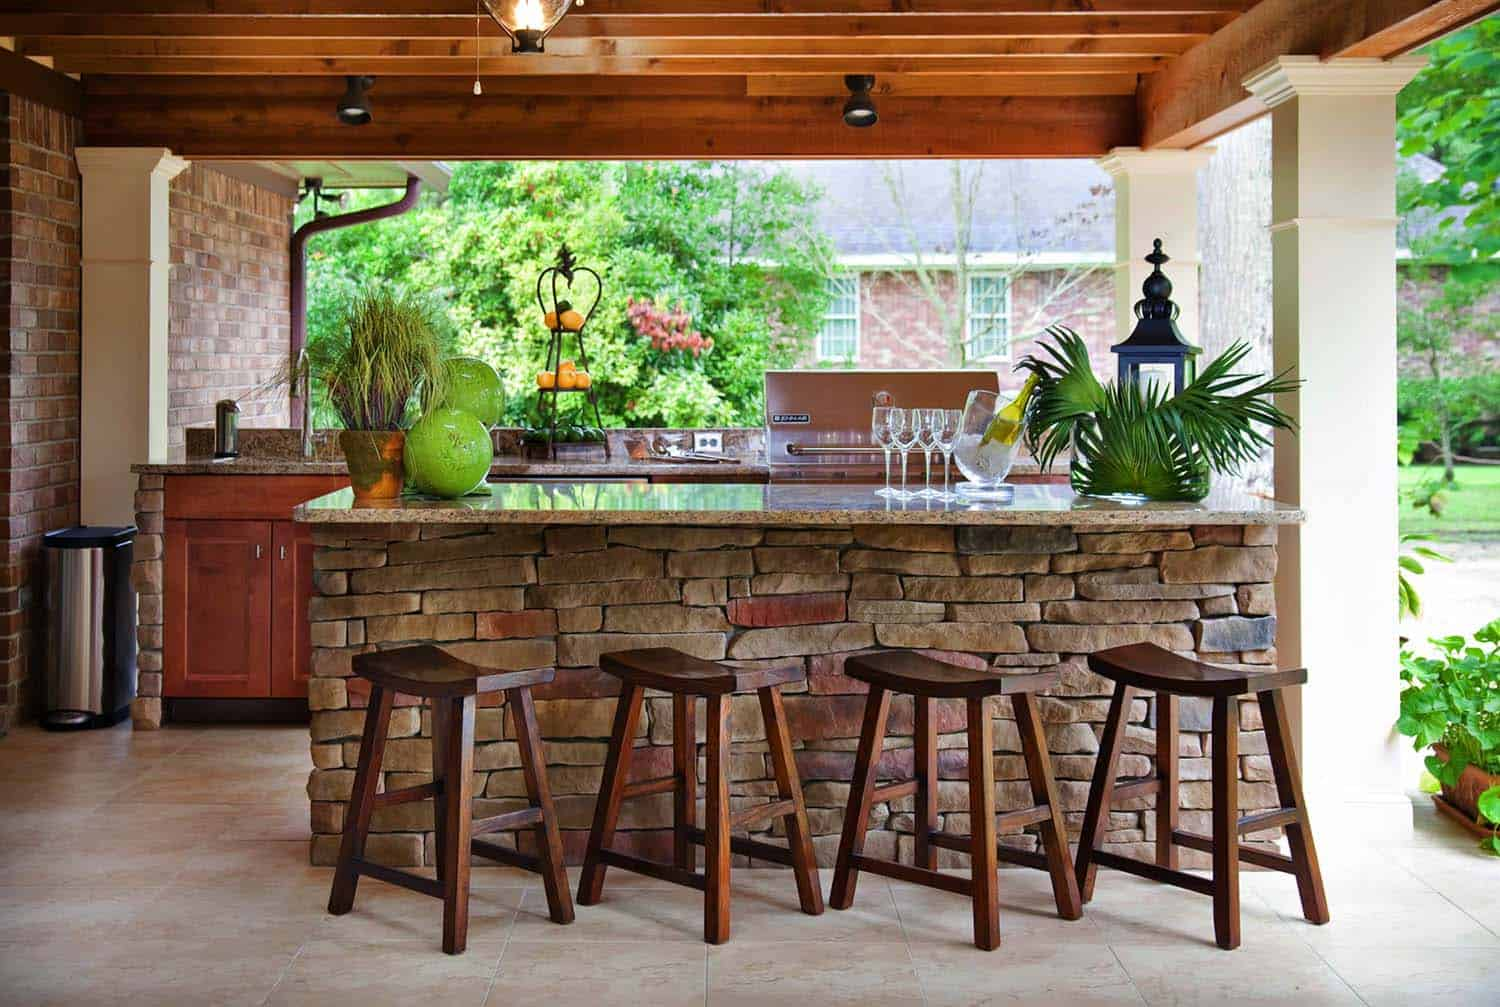 20 spectacular outdoor kitchens with bars for entertaining for Outdoor kitchen ideas